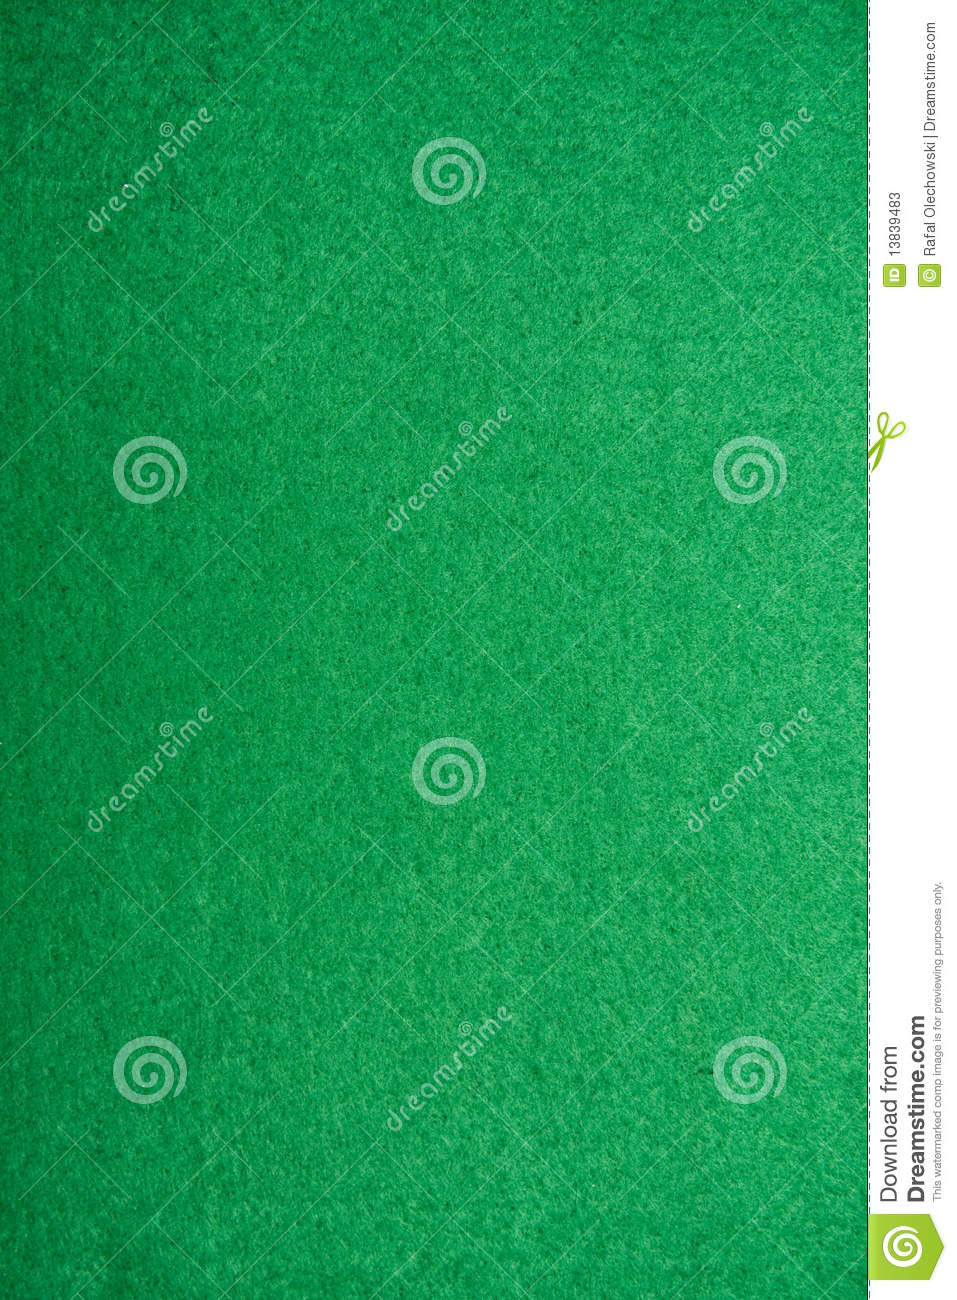 Poker table background hd - Close Up Of Green Poker Table Felt Background Stock Photos